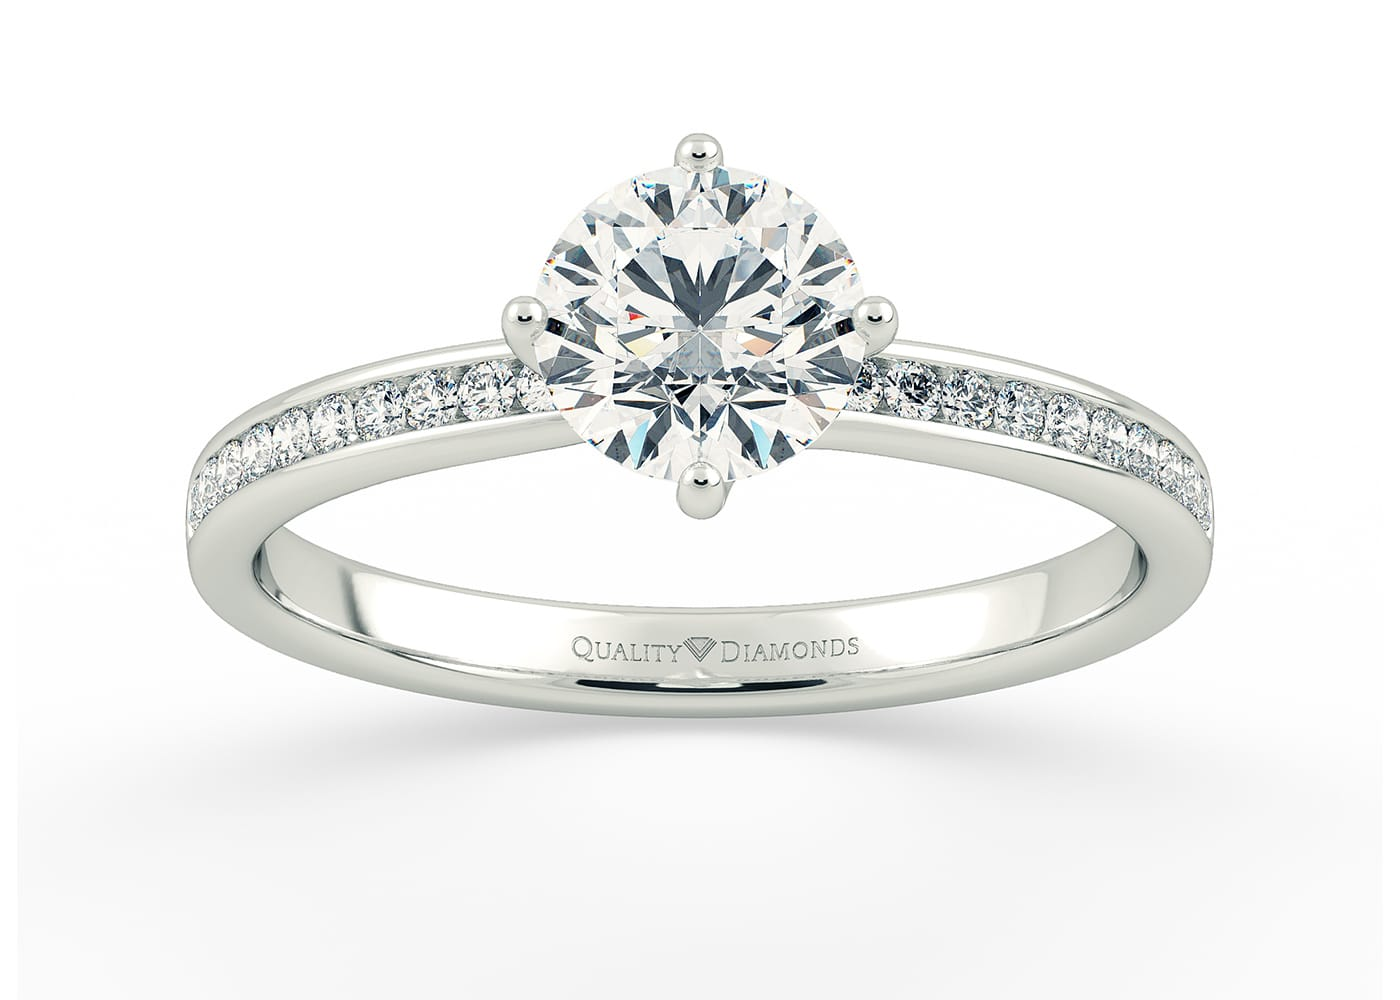 A Four Claw Compass Set Diamond Engagement Ring